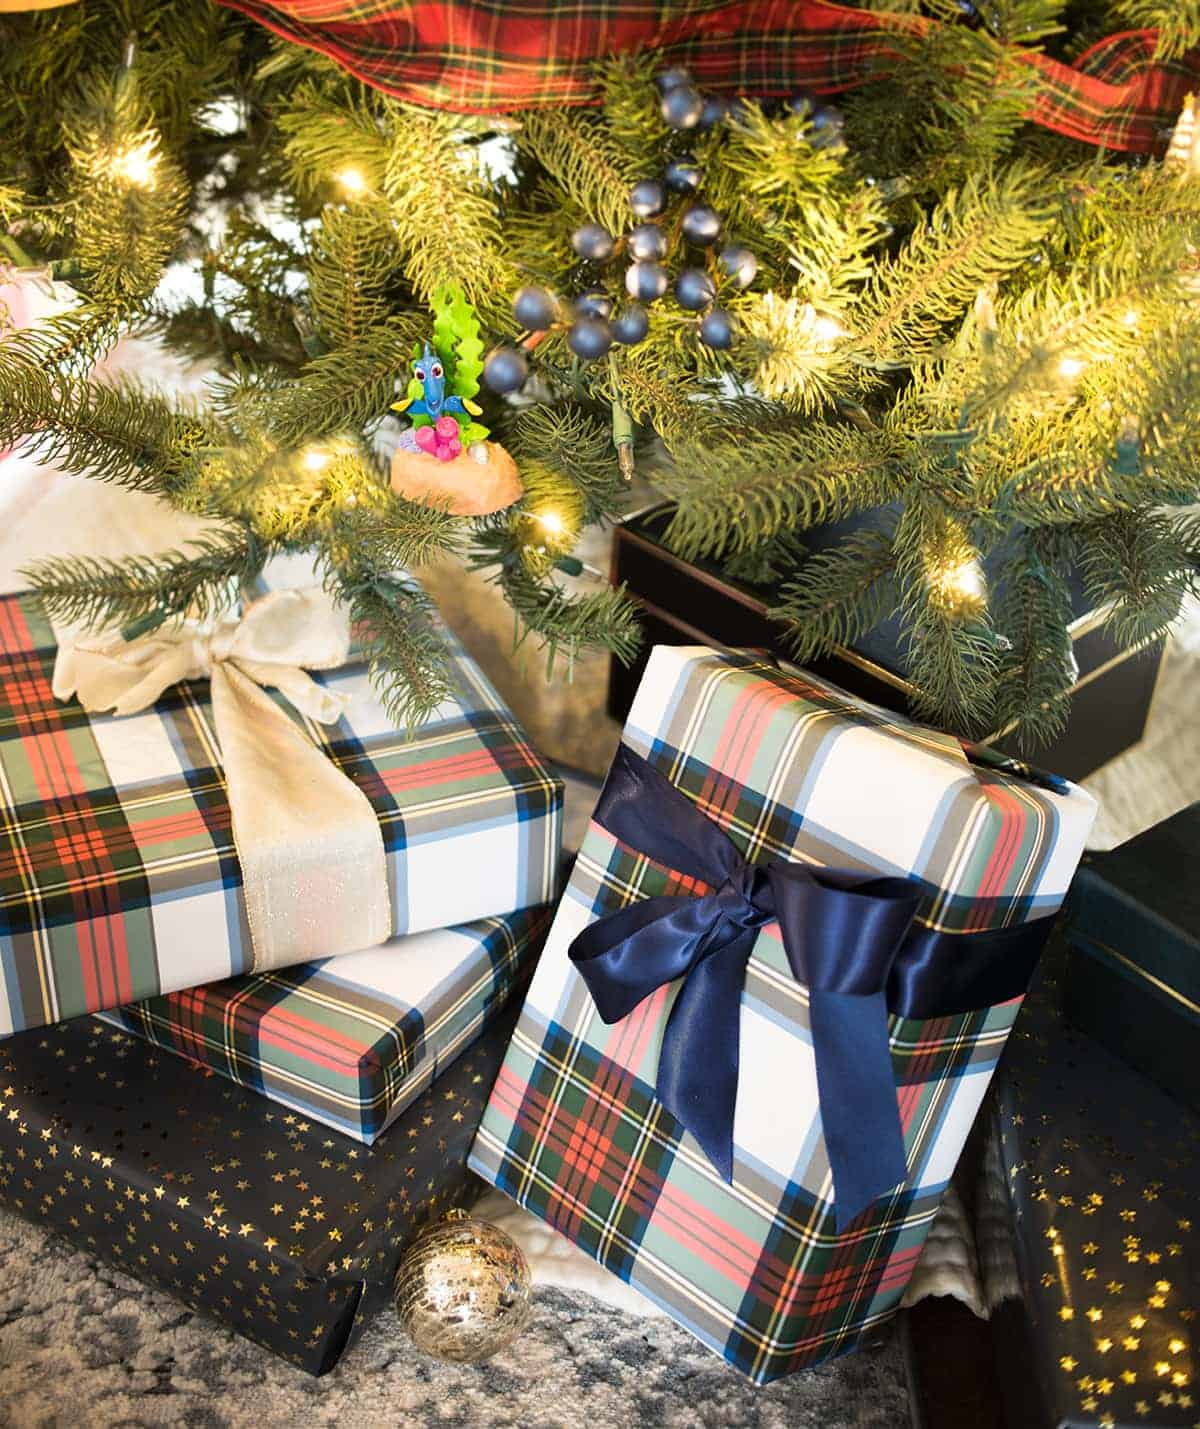 Tartan plaid wrapped Christmas Presents with fabric ribbon stacked among other gifts under the tree.